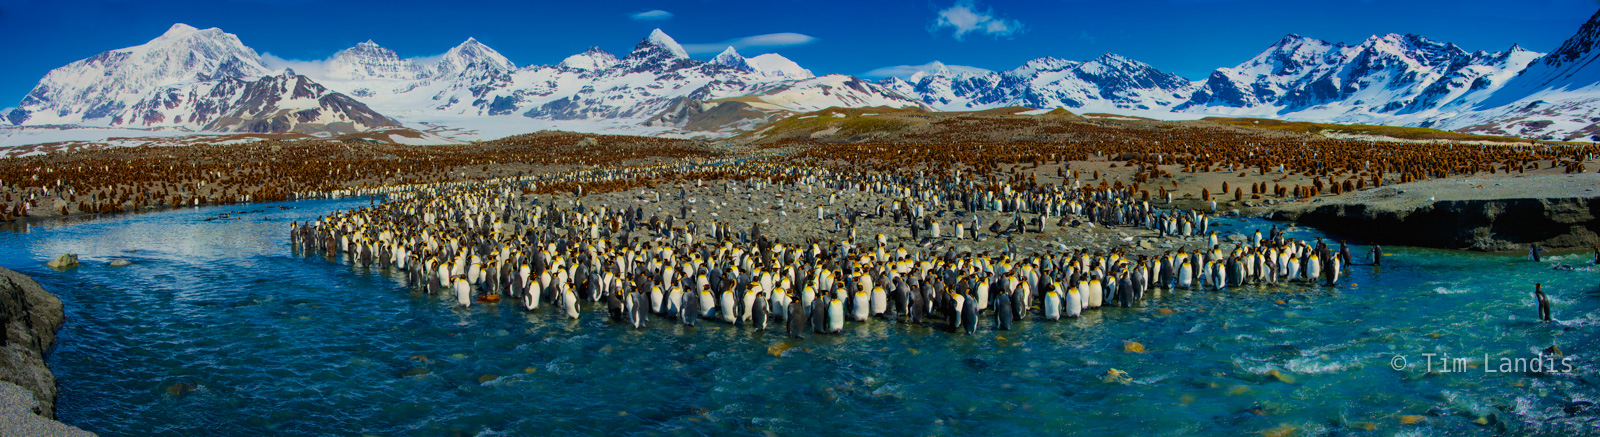 huge colony of King penguins, photo